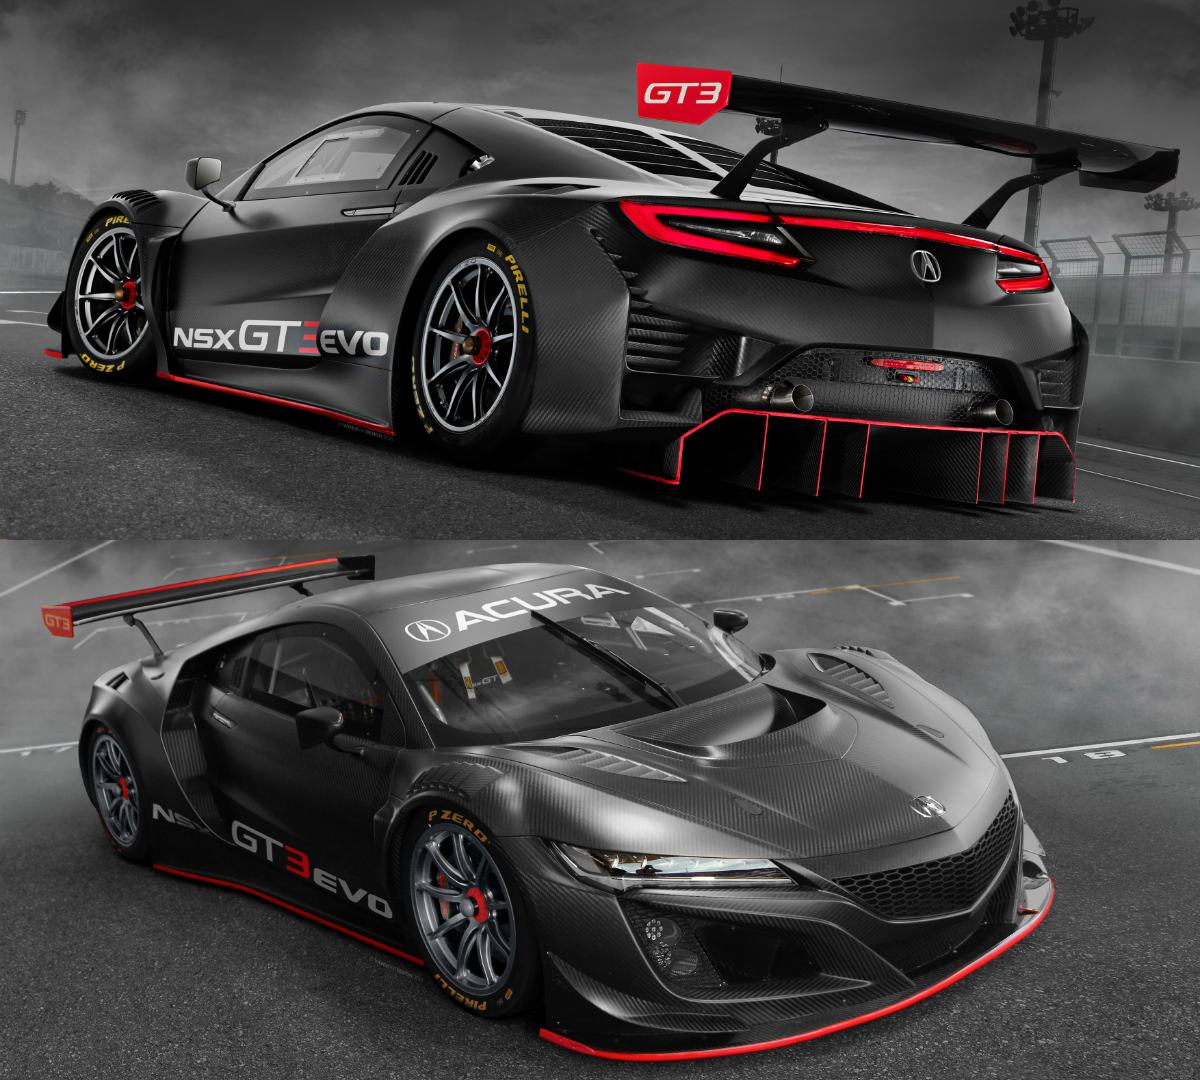 2014 Honda Nsx Concept: Honda NSX GT3 Evo To Compete On Racetracks Around The